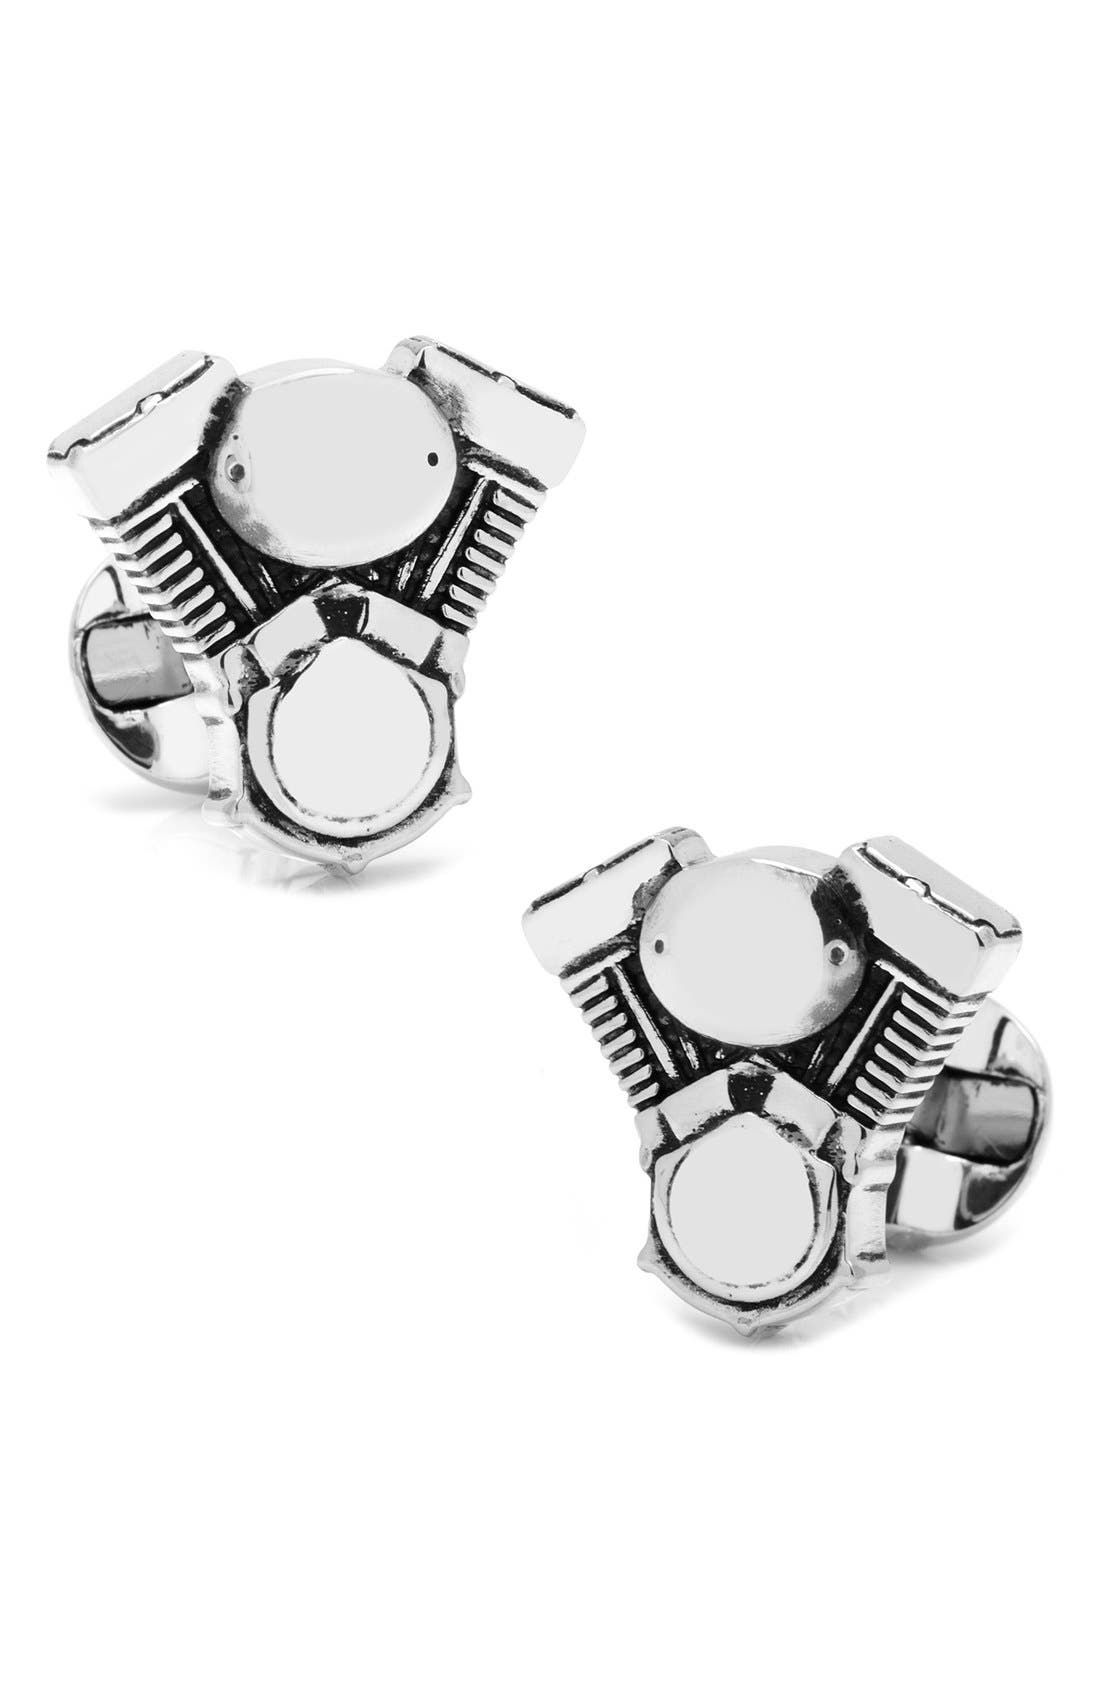 V-Twin Motor Cuff Links,                         Main,                         color, Silver